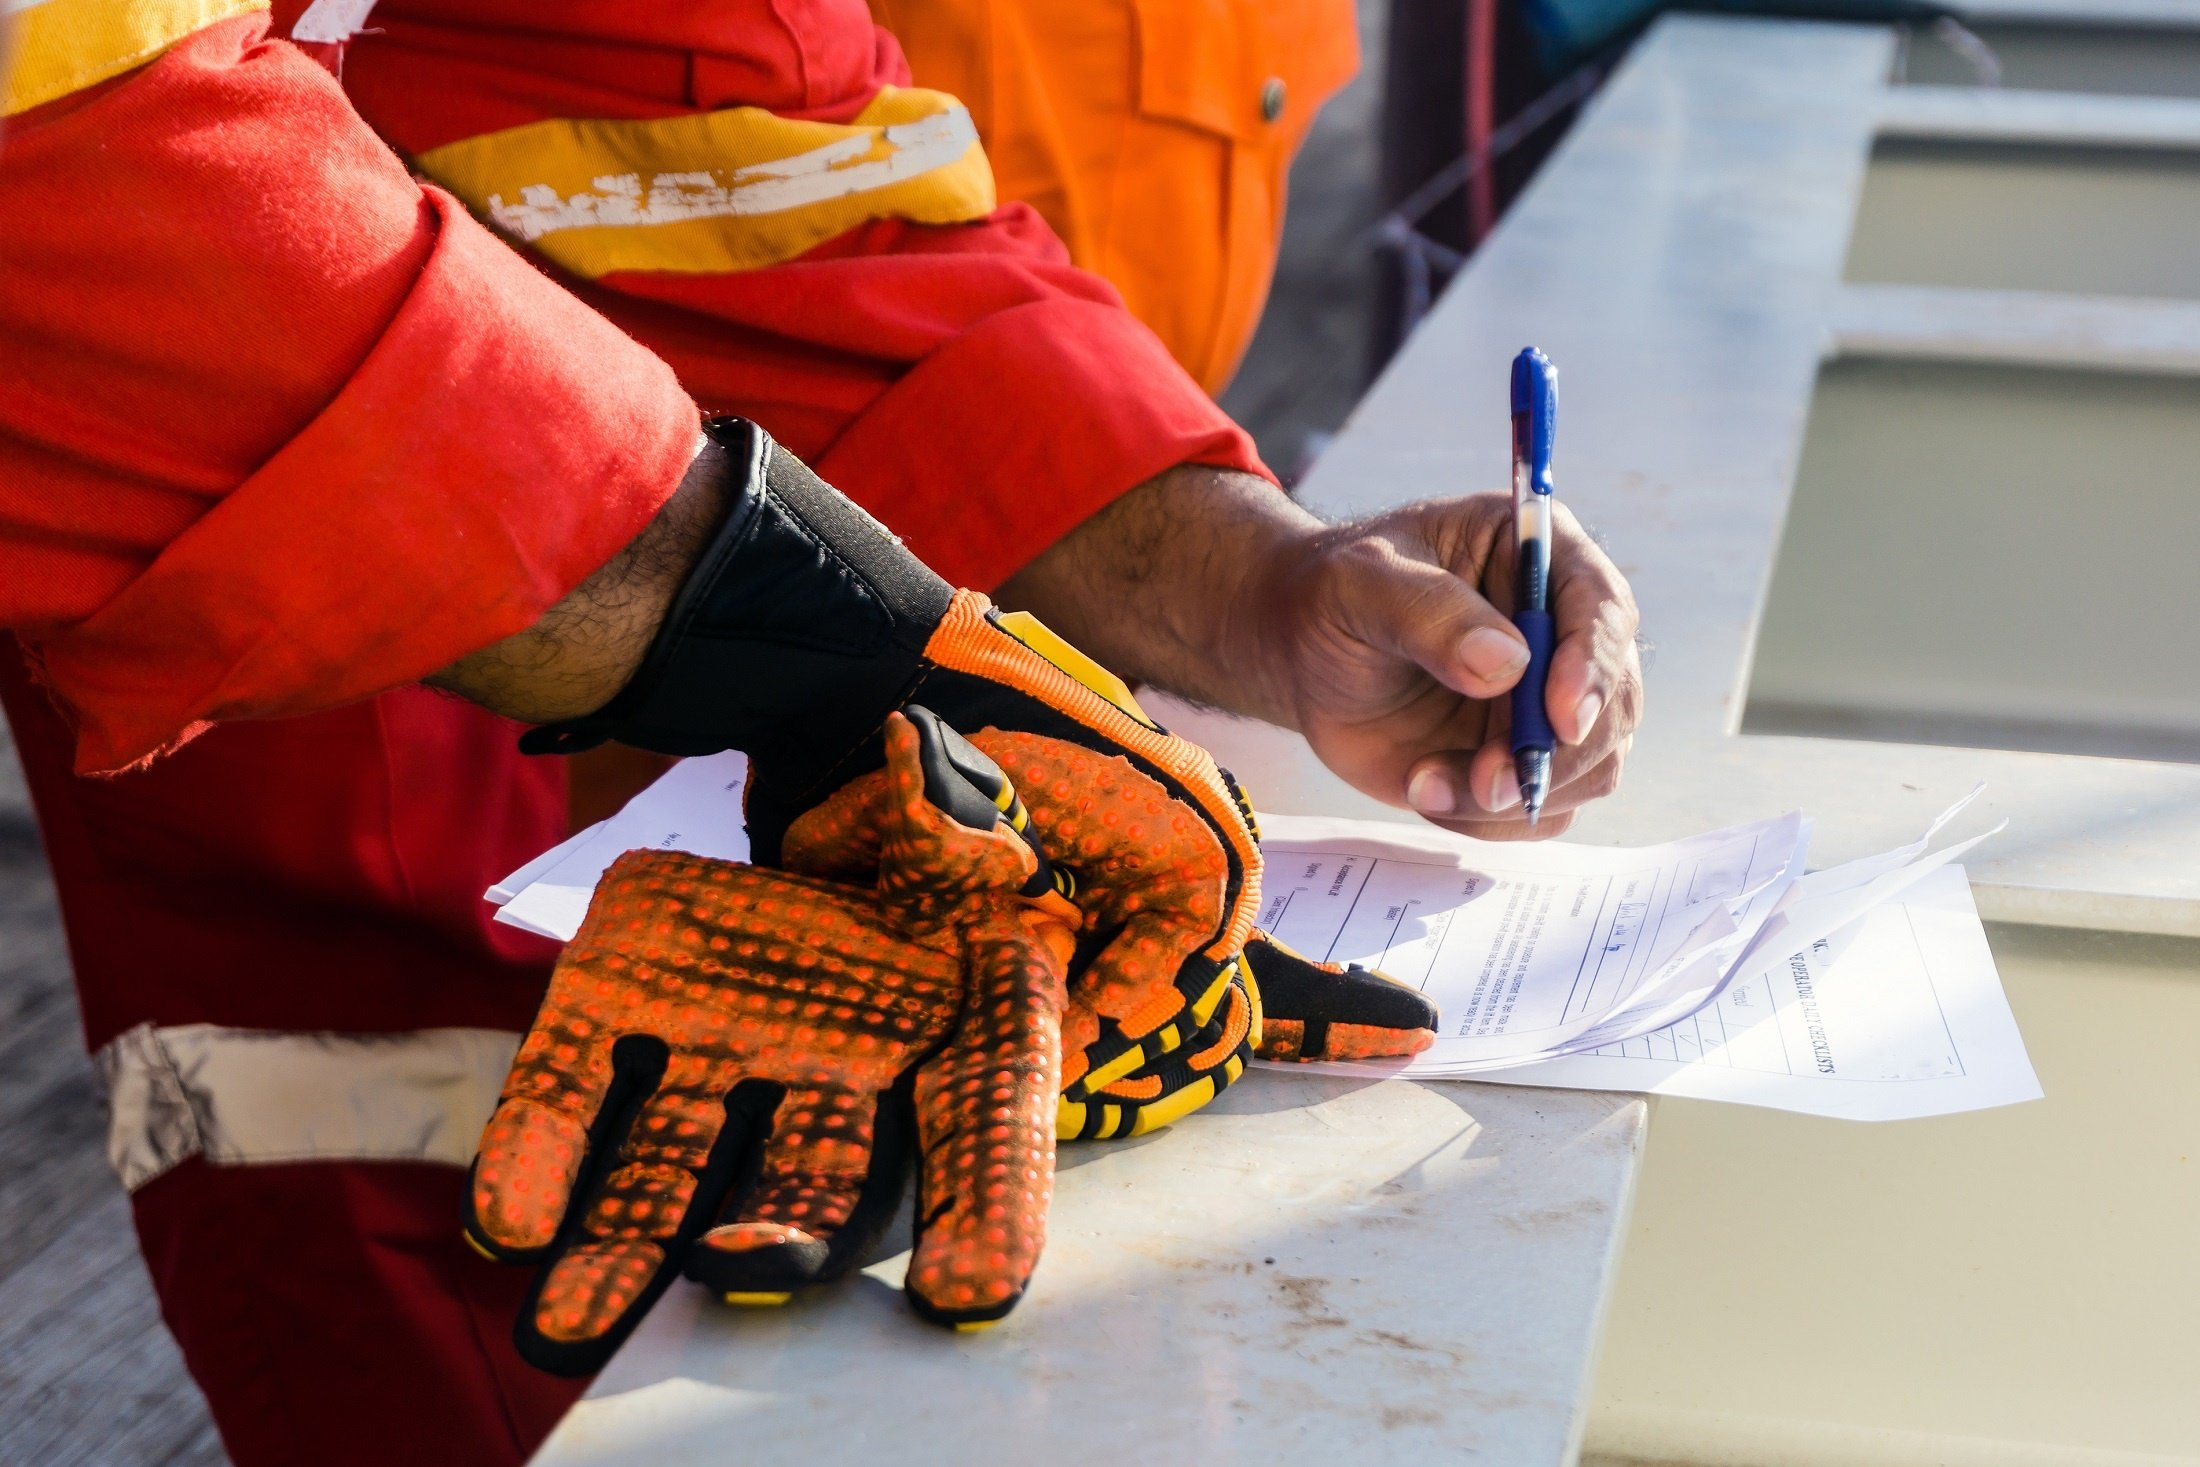 Personal Protective Equipment (PPE) for flammable liquids